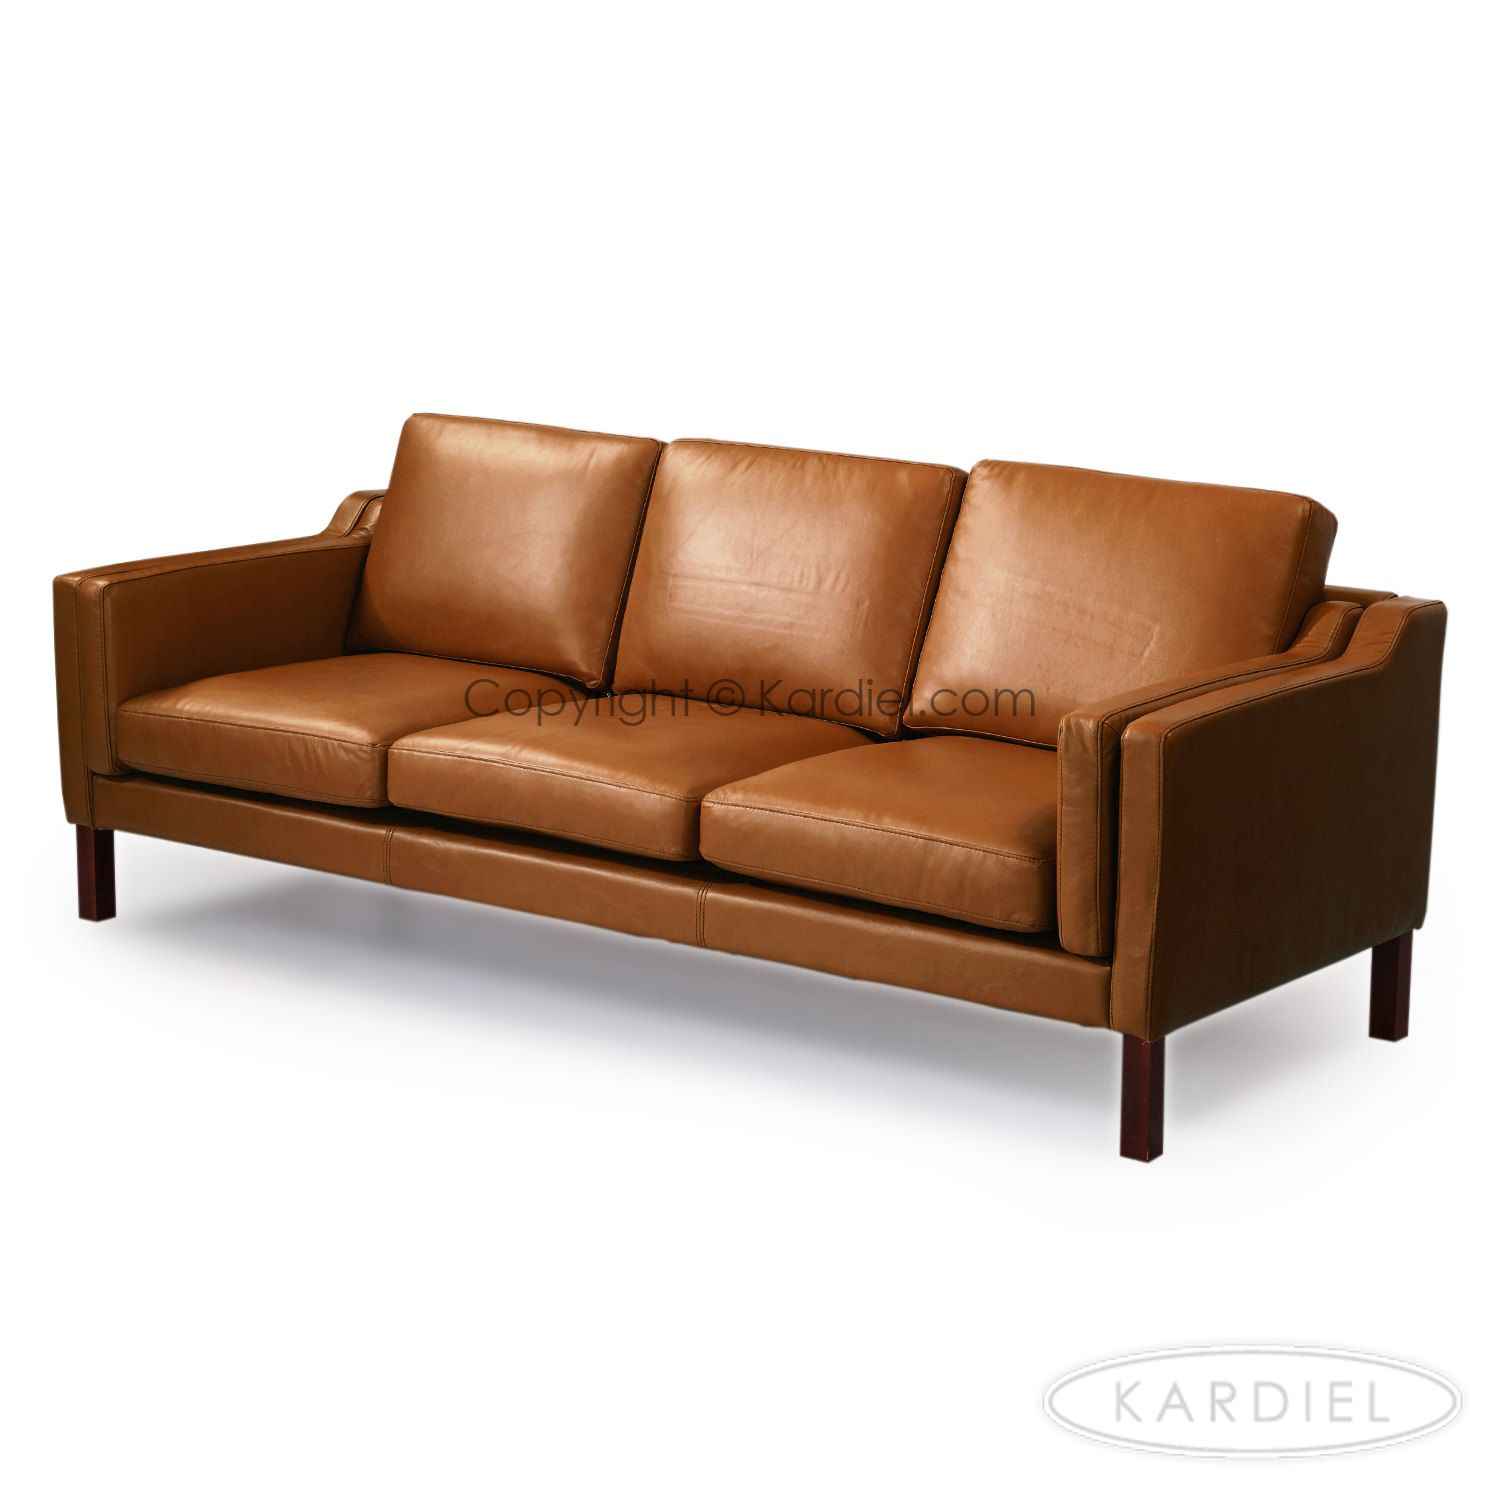 Modern, carmel color leather sofa | Monroe Mid-century Modern Sofa ...